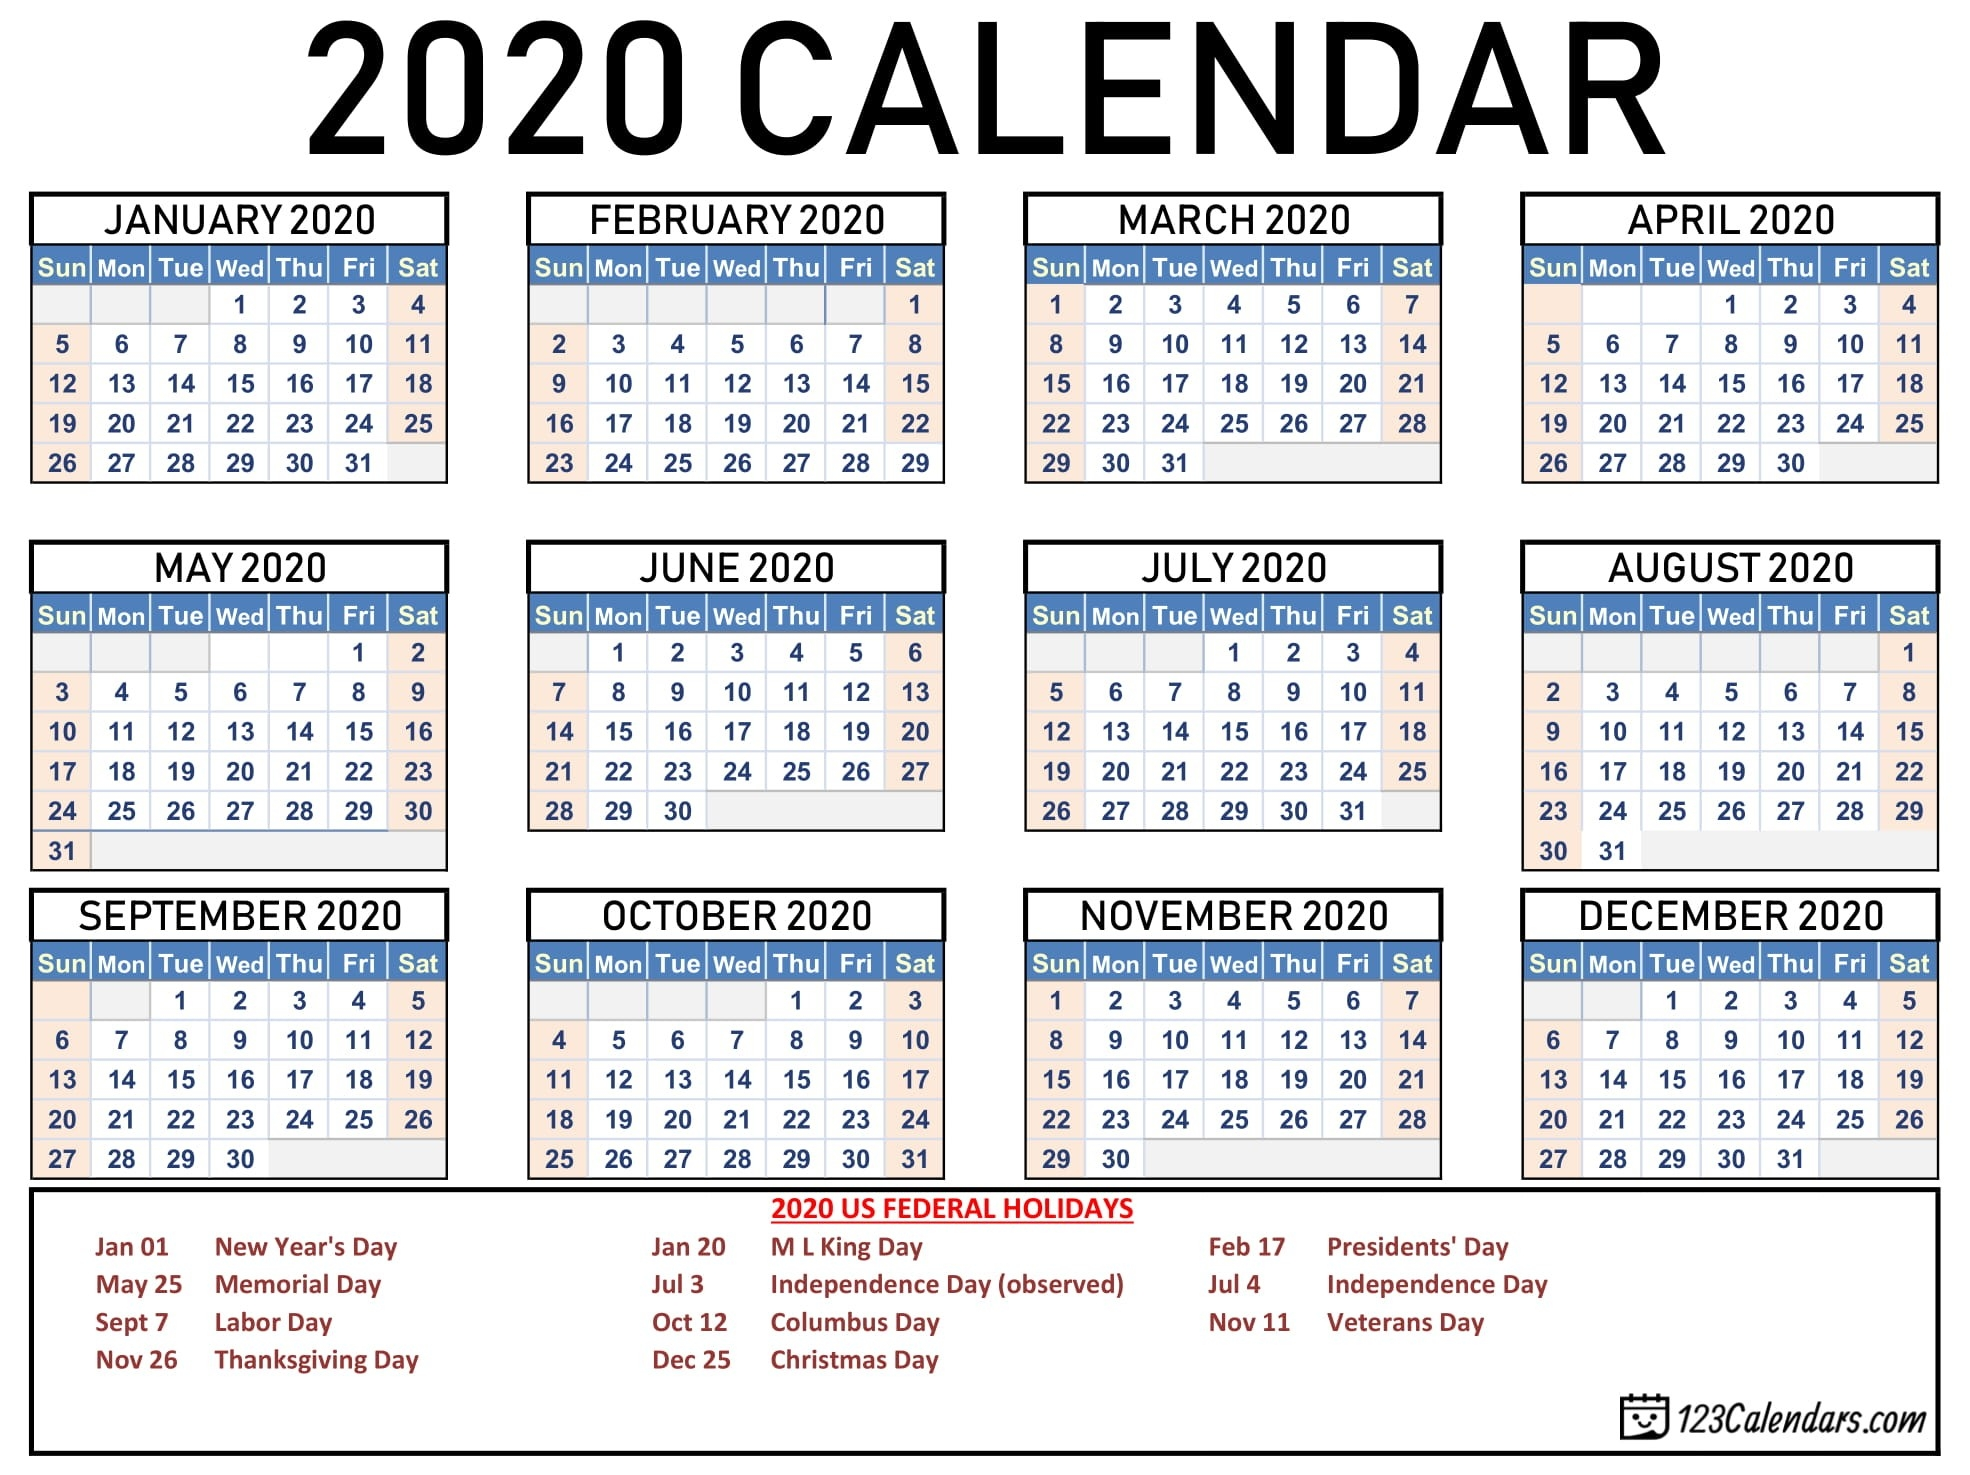 Free Printable Year 2020 Calendar | 123Calendars-Printable 2020 Calendar With Holidays Usa